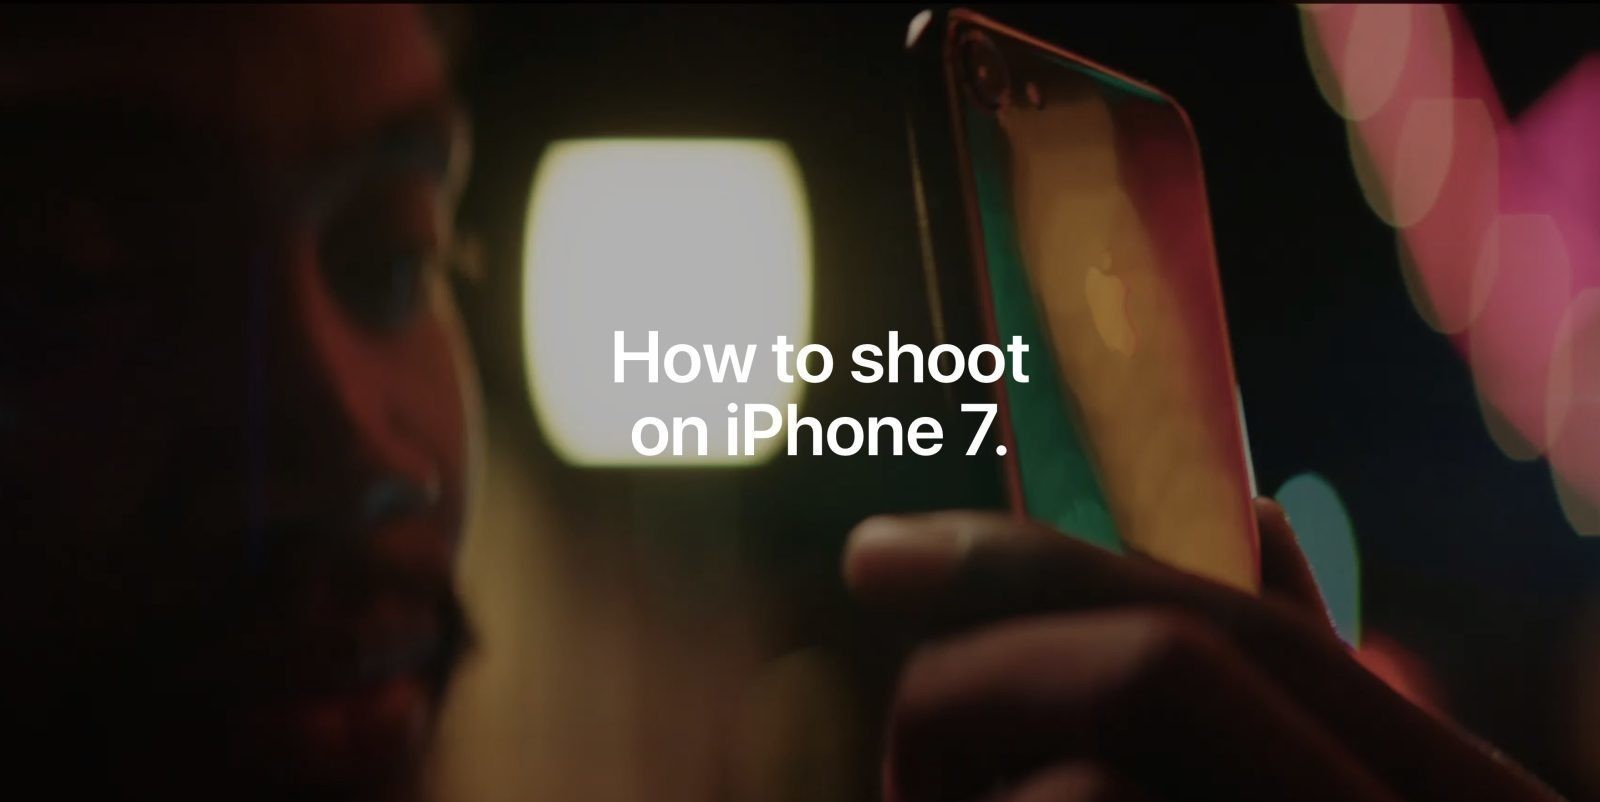 Apple adds 4 new tutorials to 'How to shoot on iPhone 7' video series